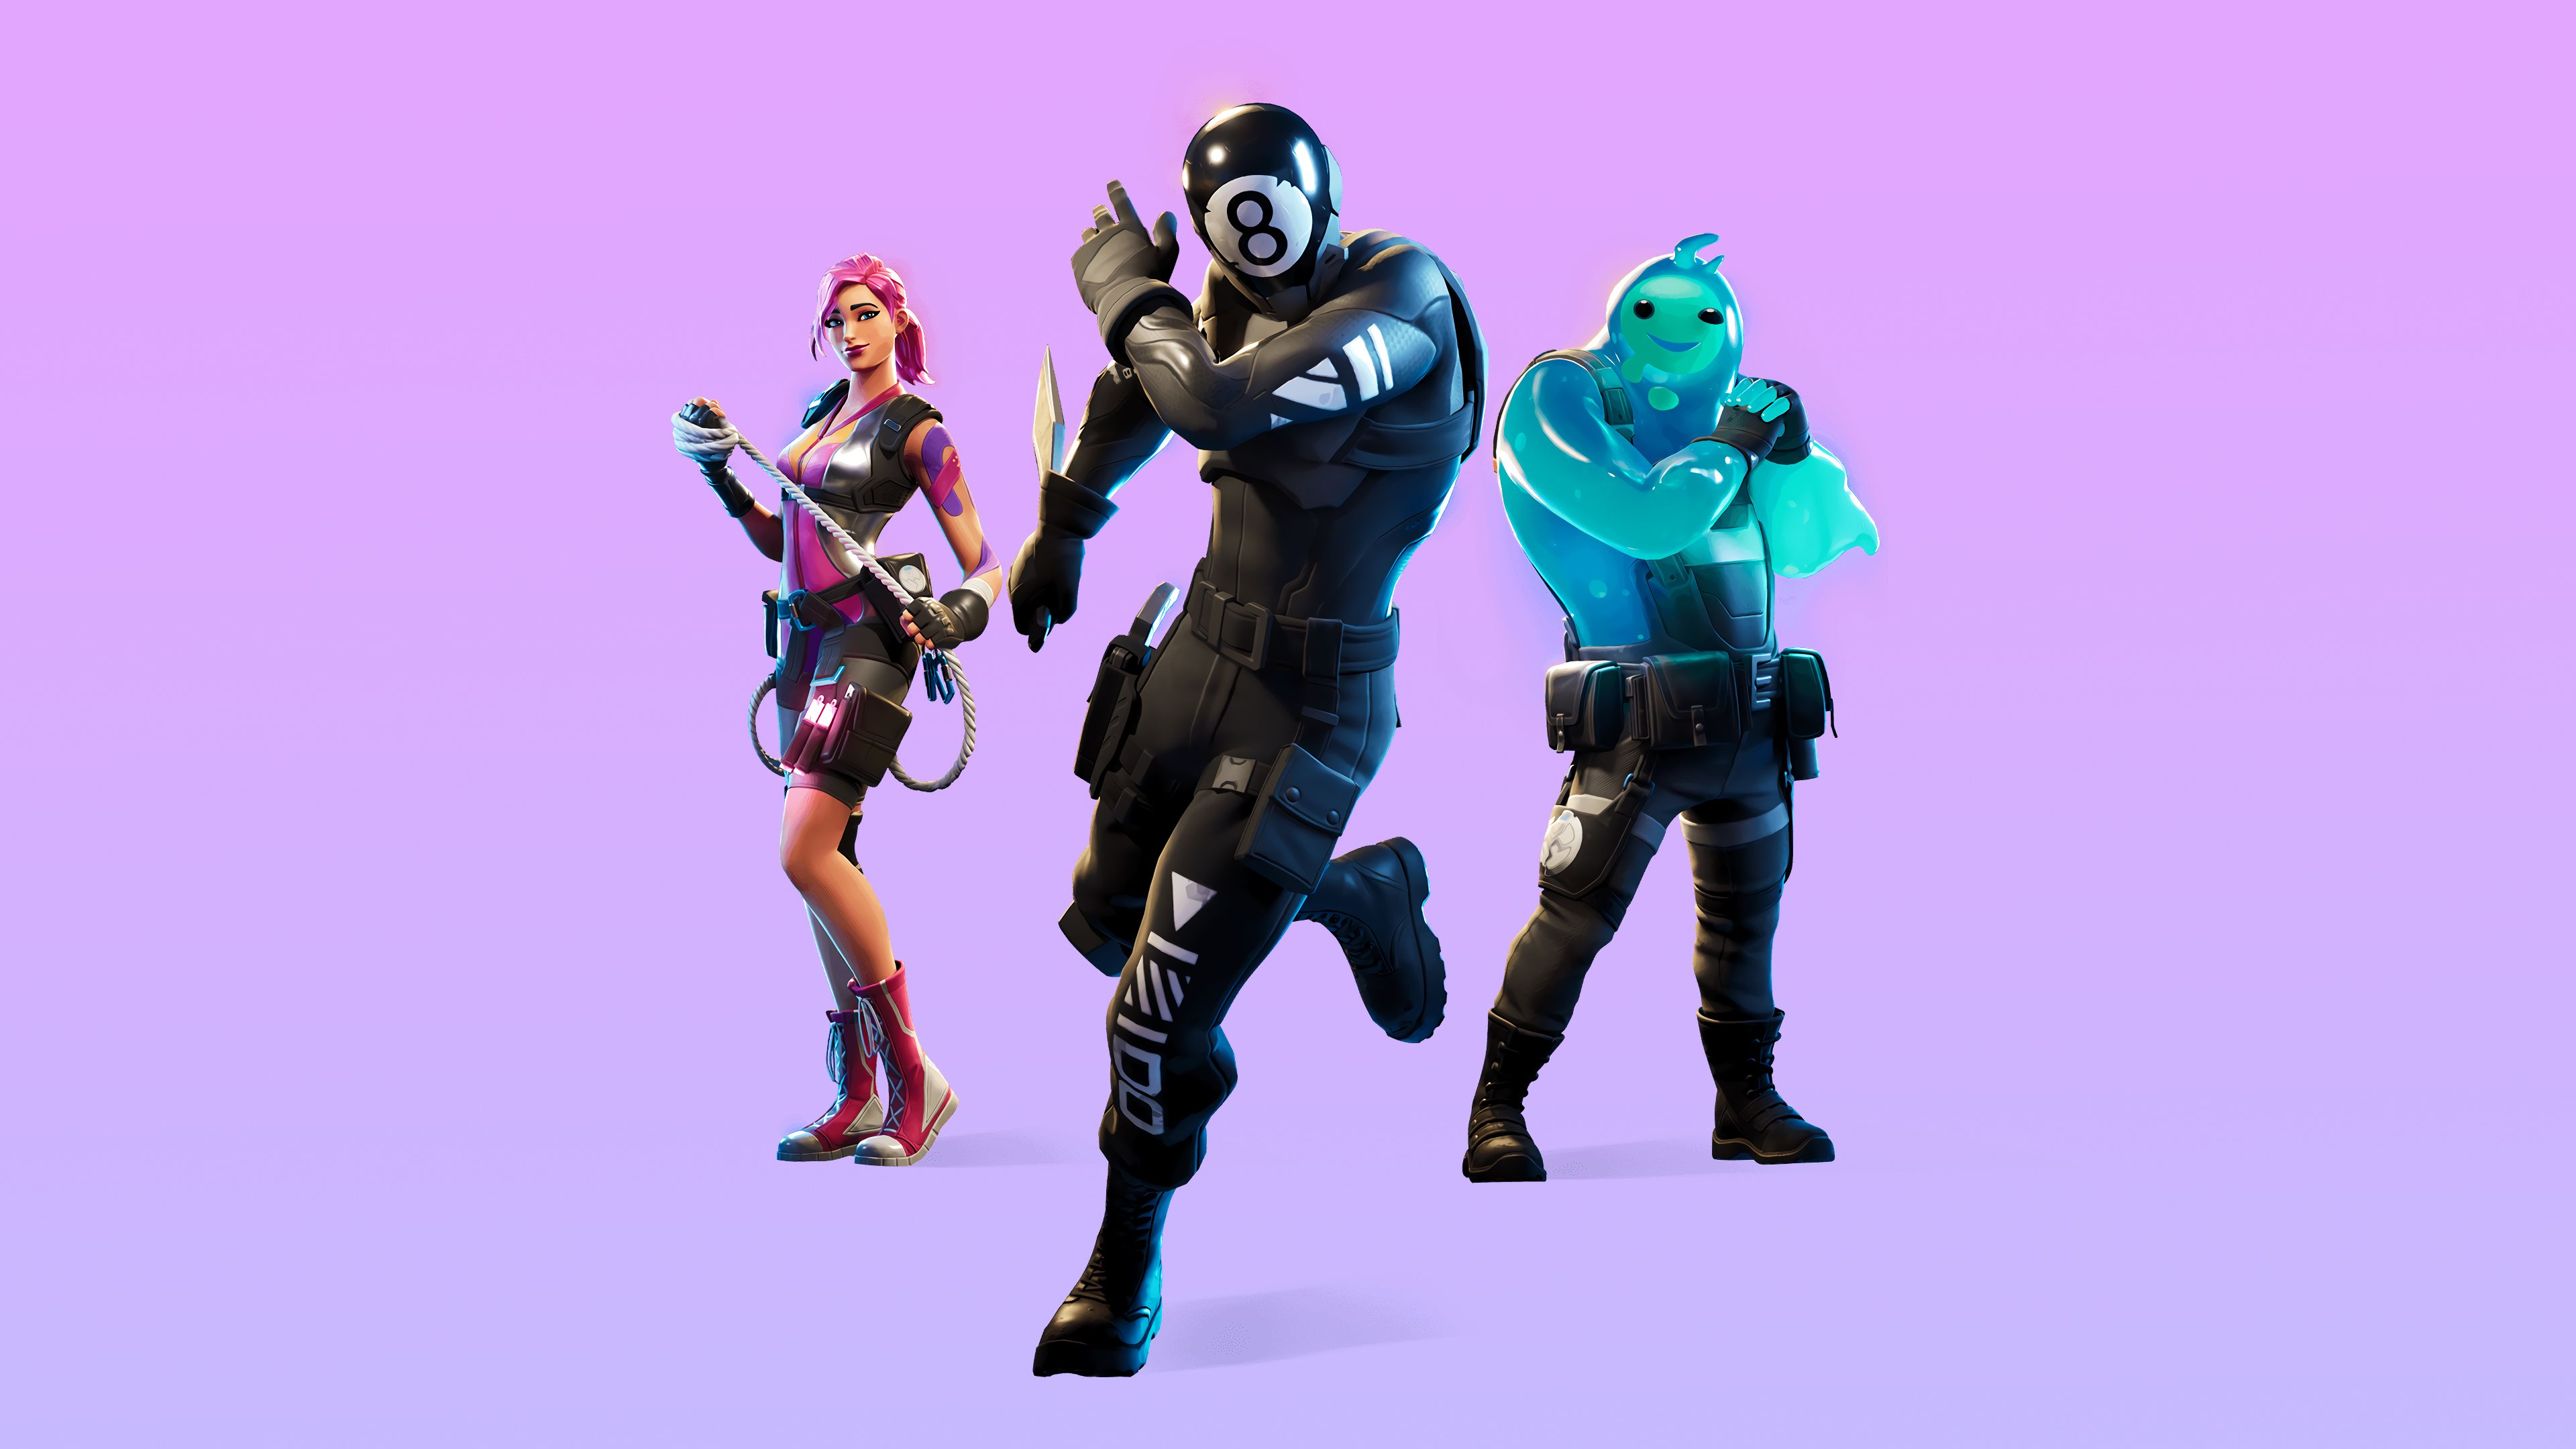 Fortnite Chapter 2 Wallpapers   Top Fortnite Chapter 2 3840x2160